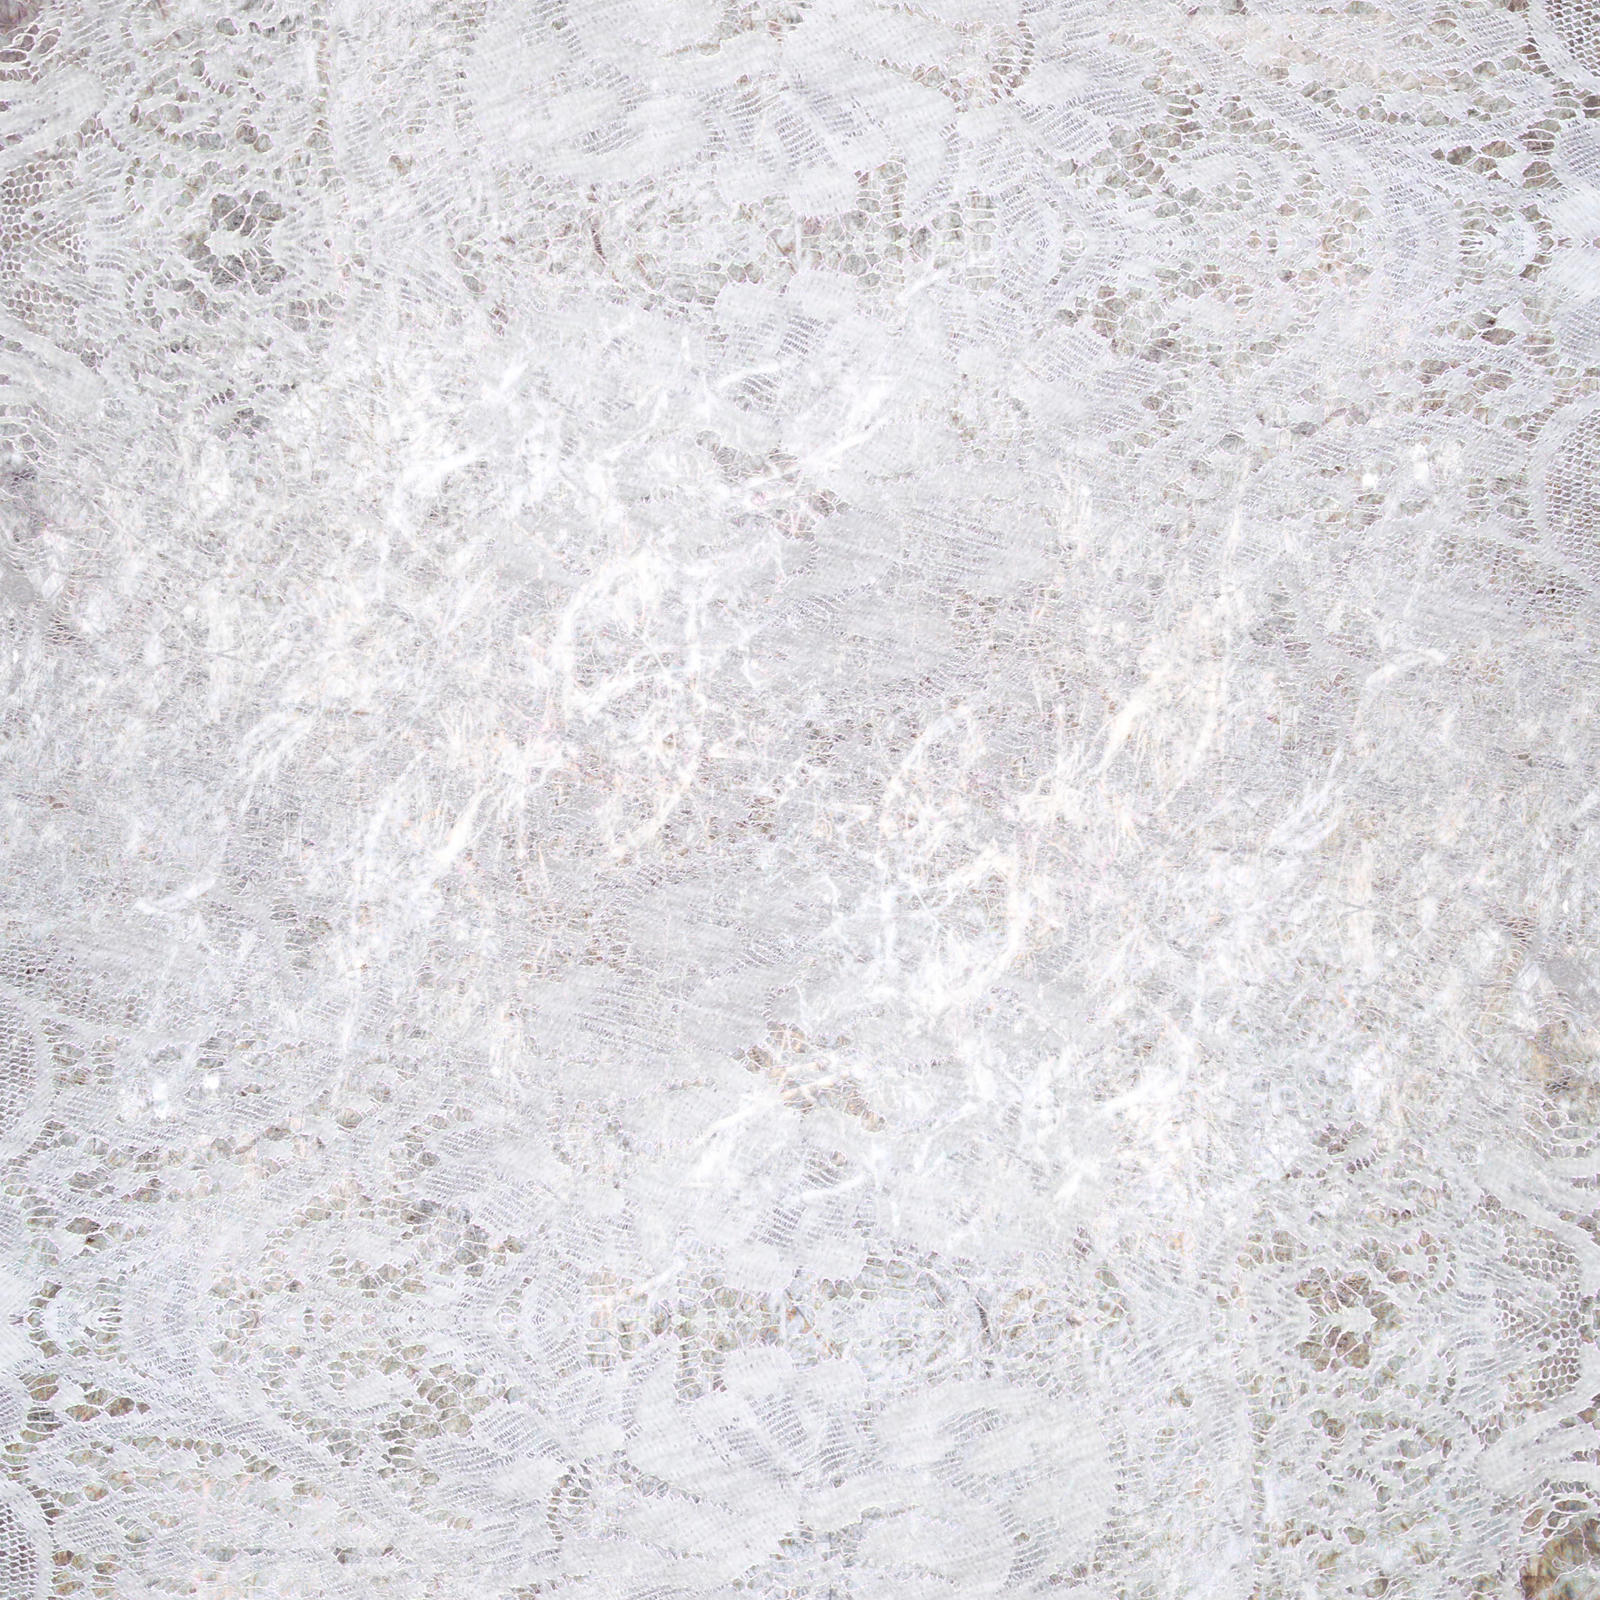 white lace tumblr backgrounds - photo #21